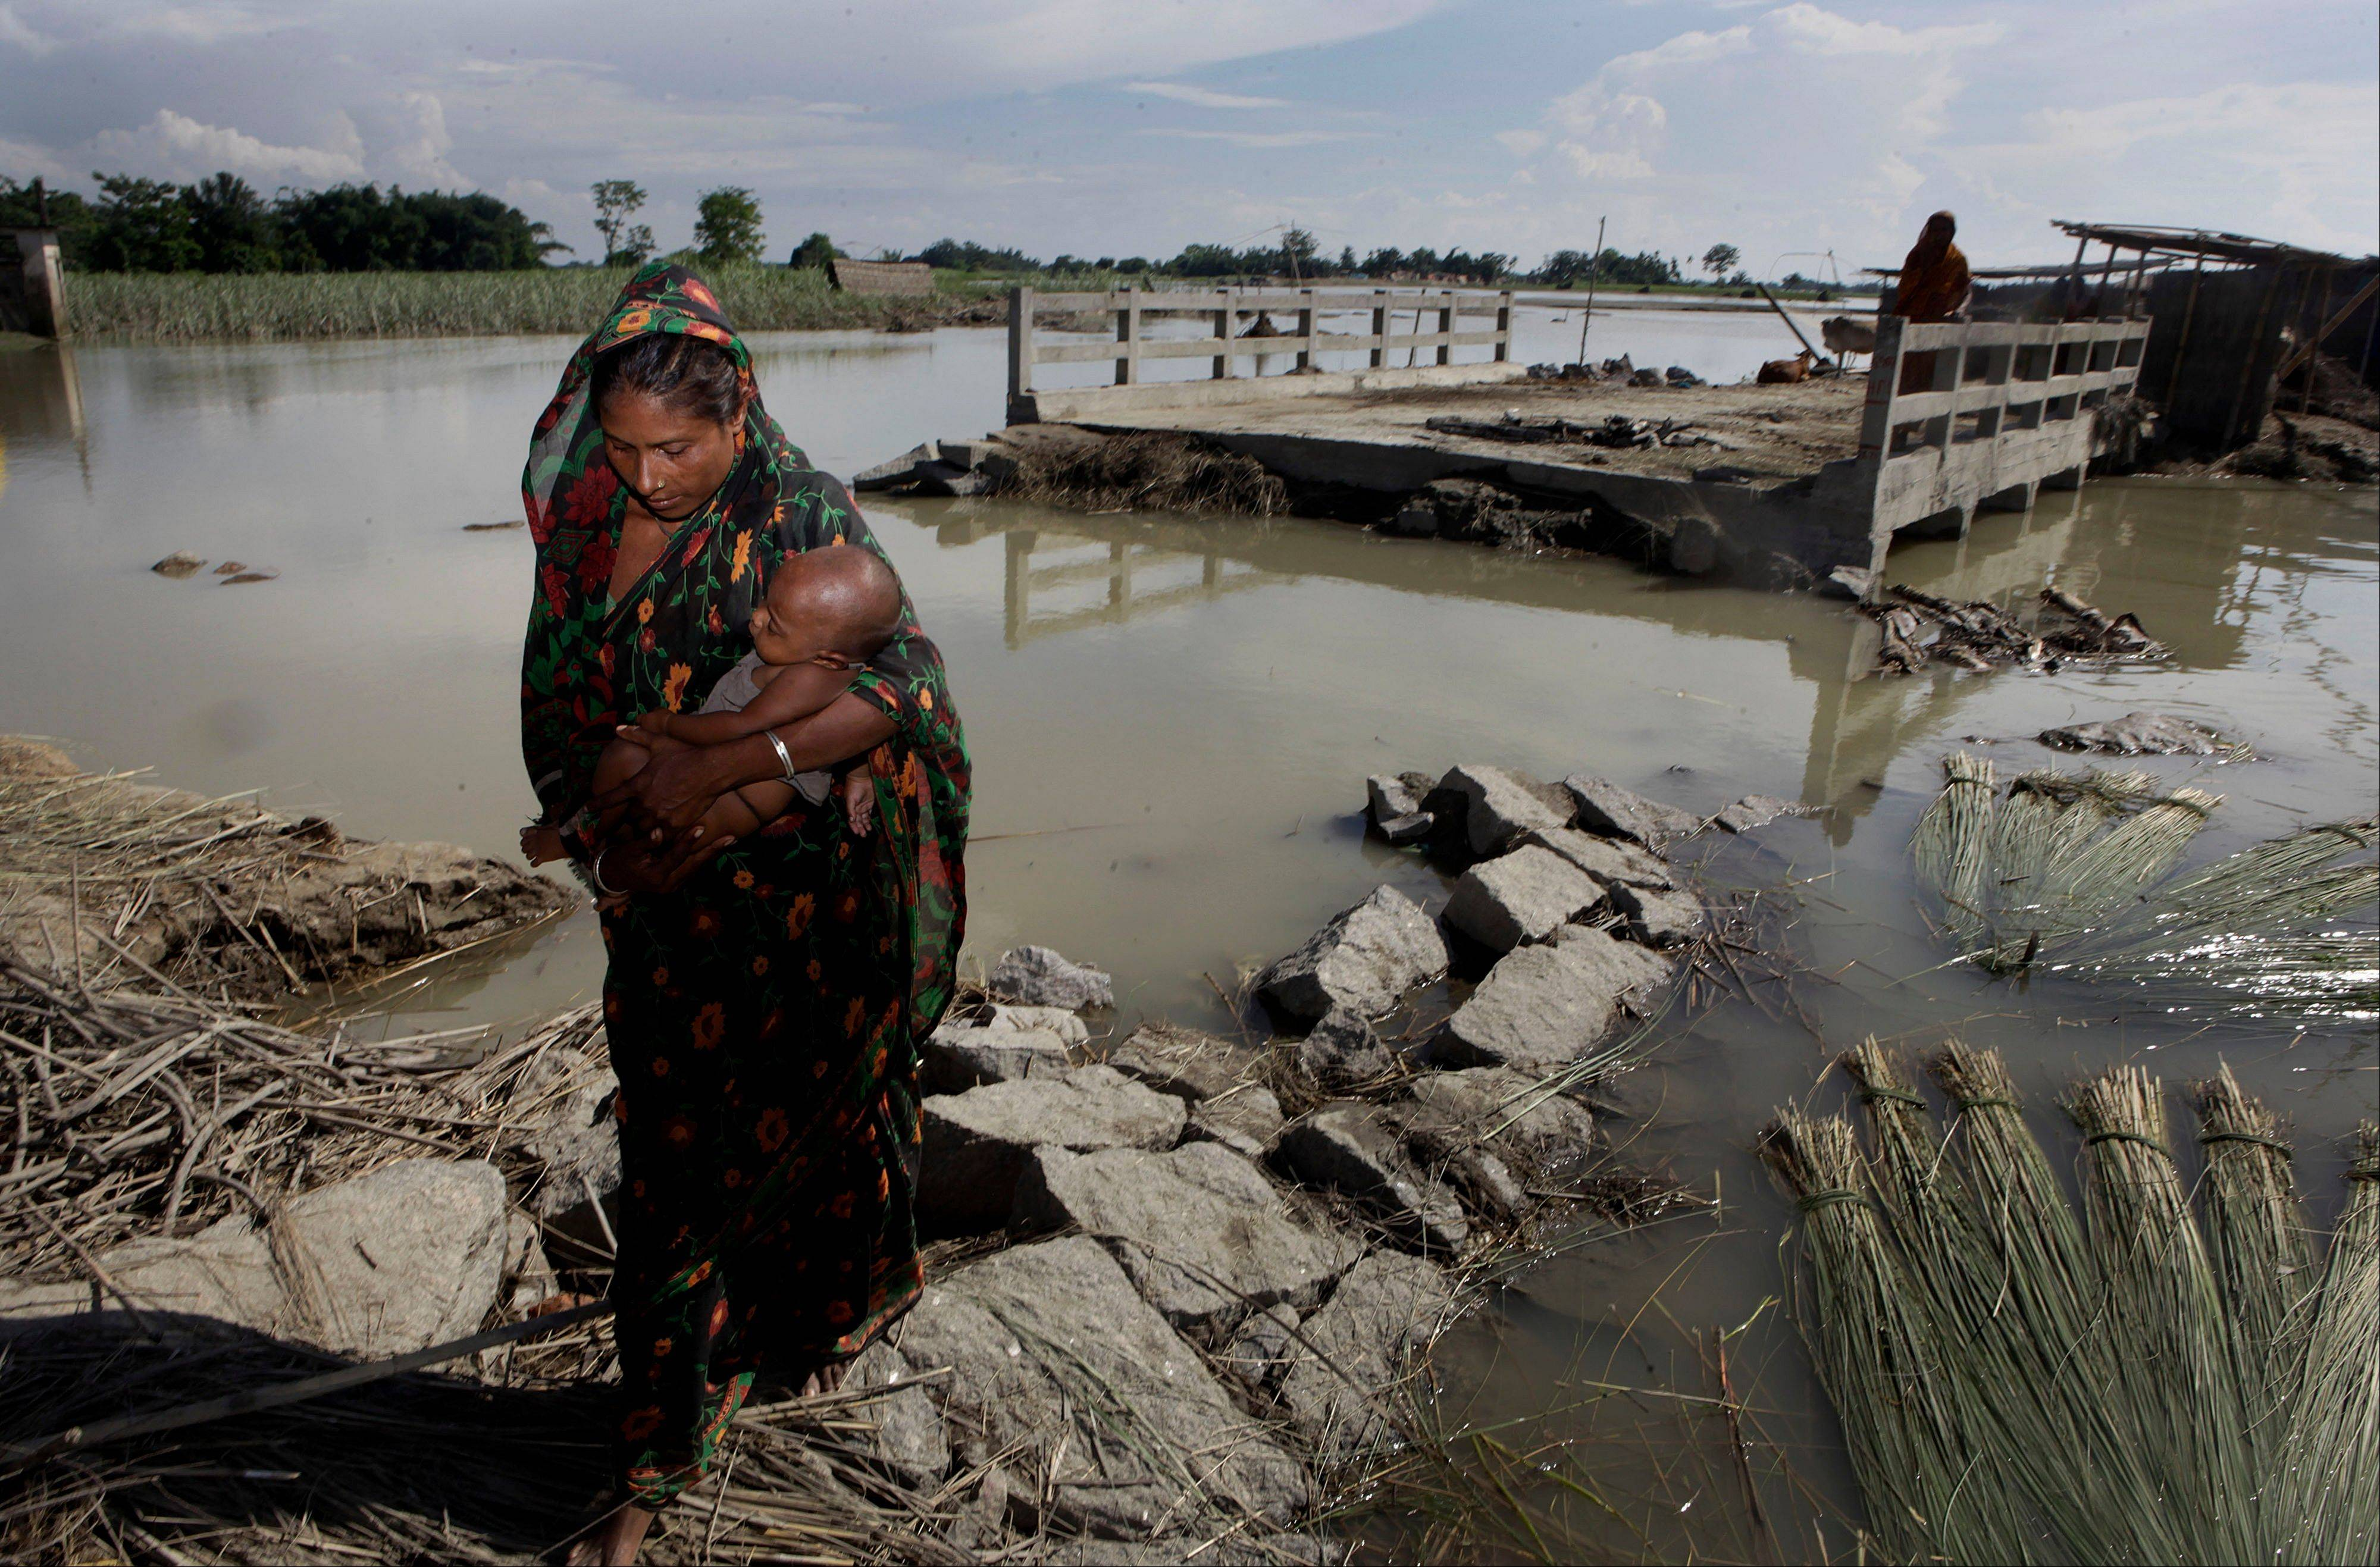 A woman carries her baby as she walks past a bridge that was washed away in the recent monsoon floods in Deeghal Ati village in the northeastern Indian state of Assam on Sunday. About half of the 2.2 million people who were displaced remain in makeshift shelters or with relatives or friends.